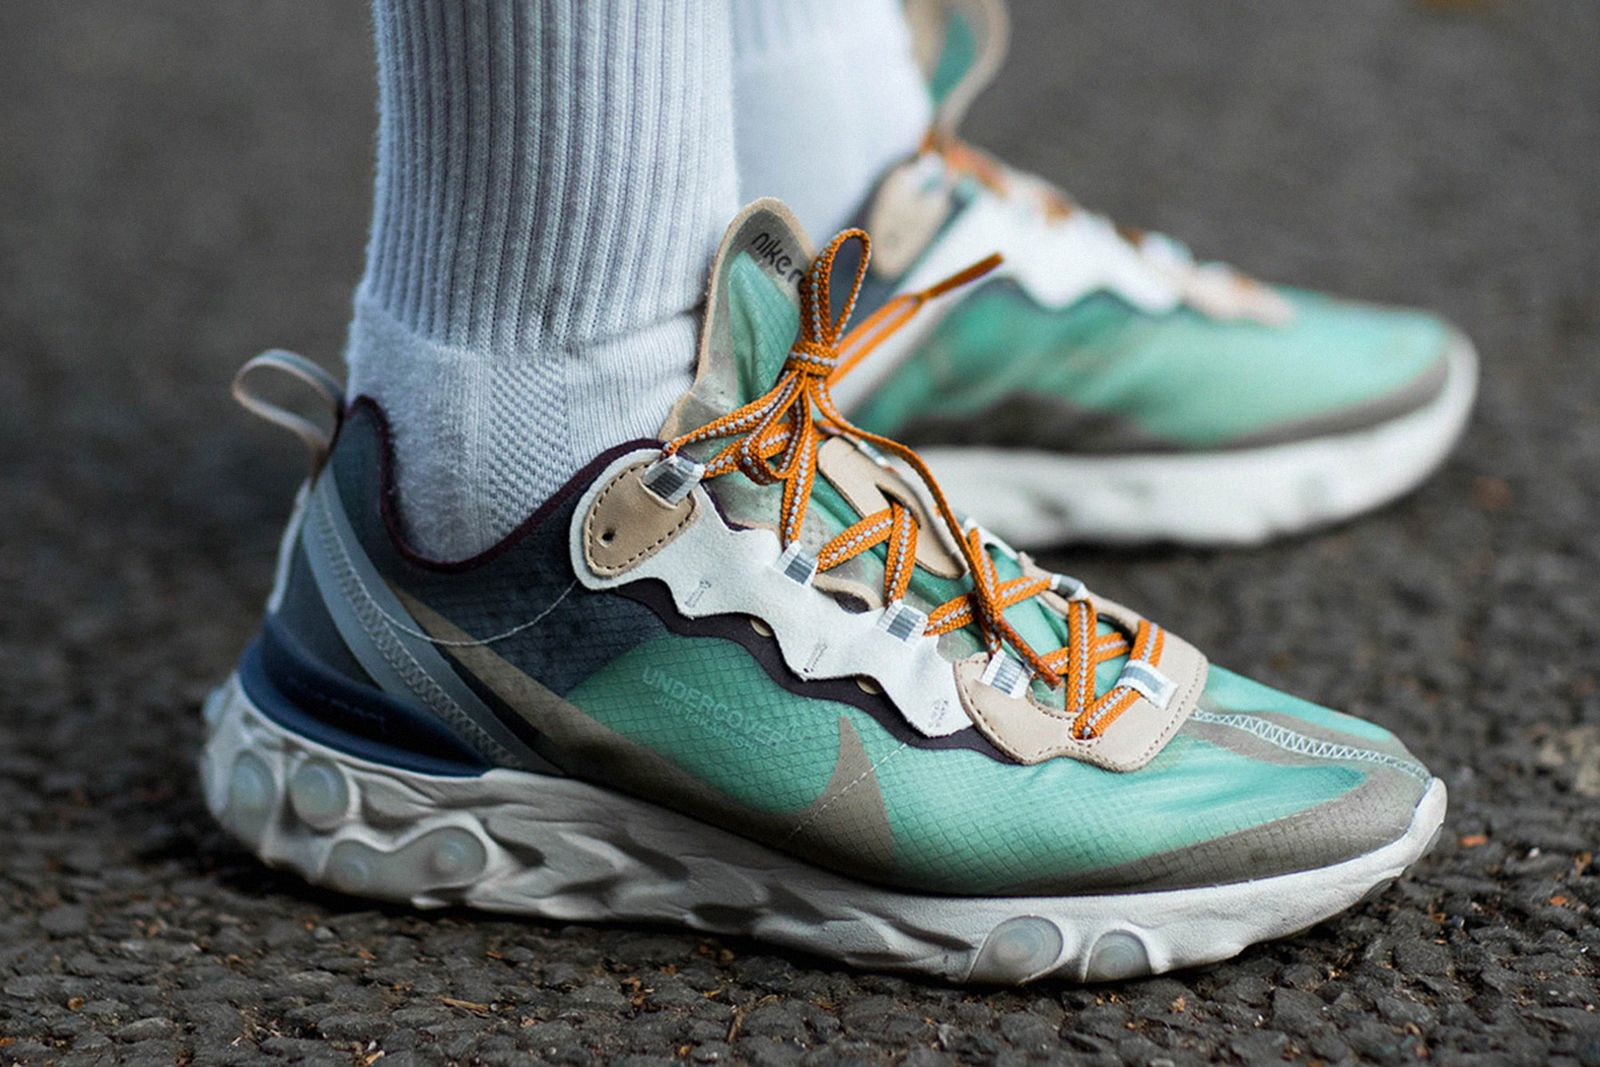 Torneado Festival misil  Nike's React Element 87 is Back and Better Than Ever